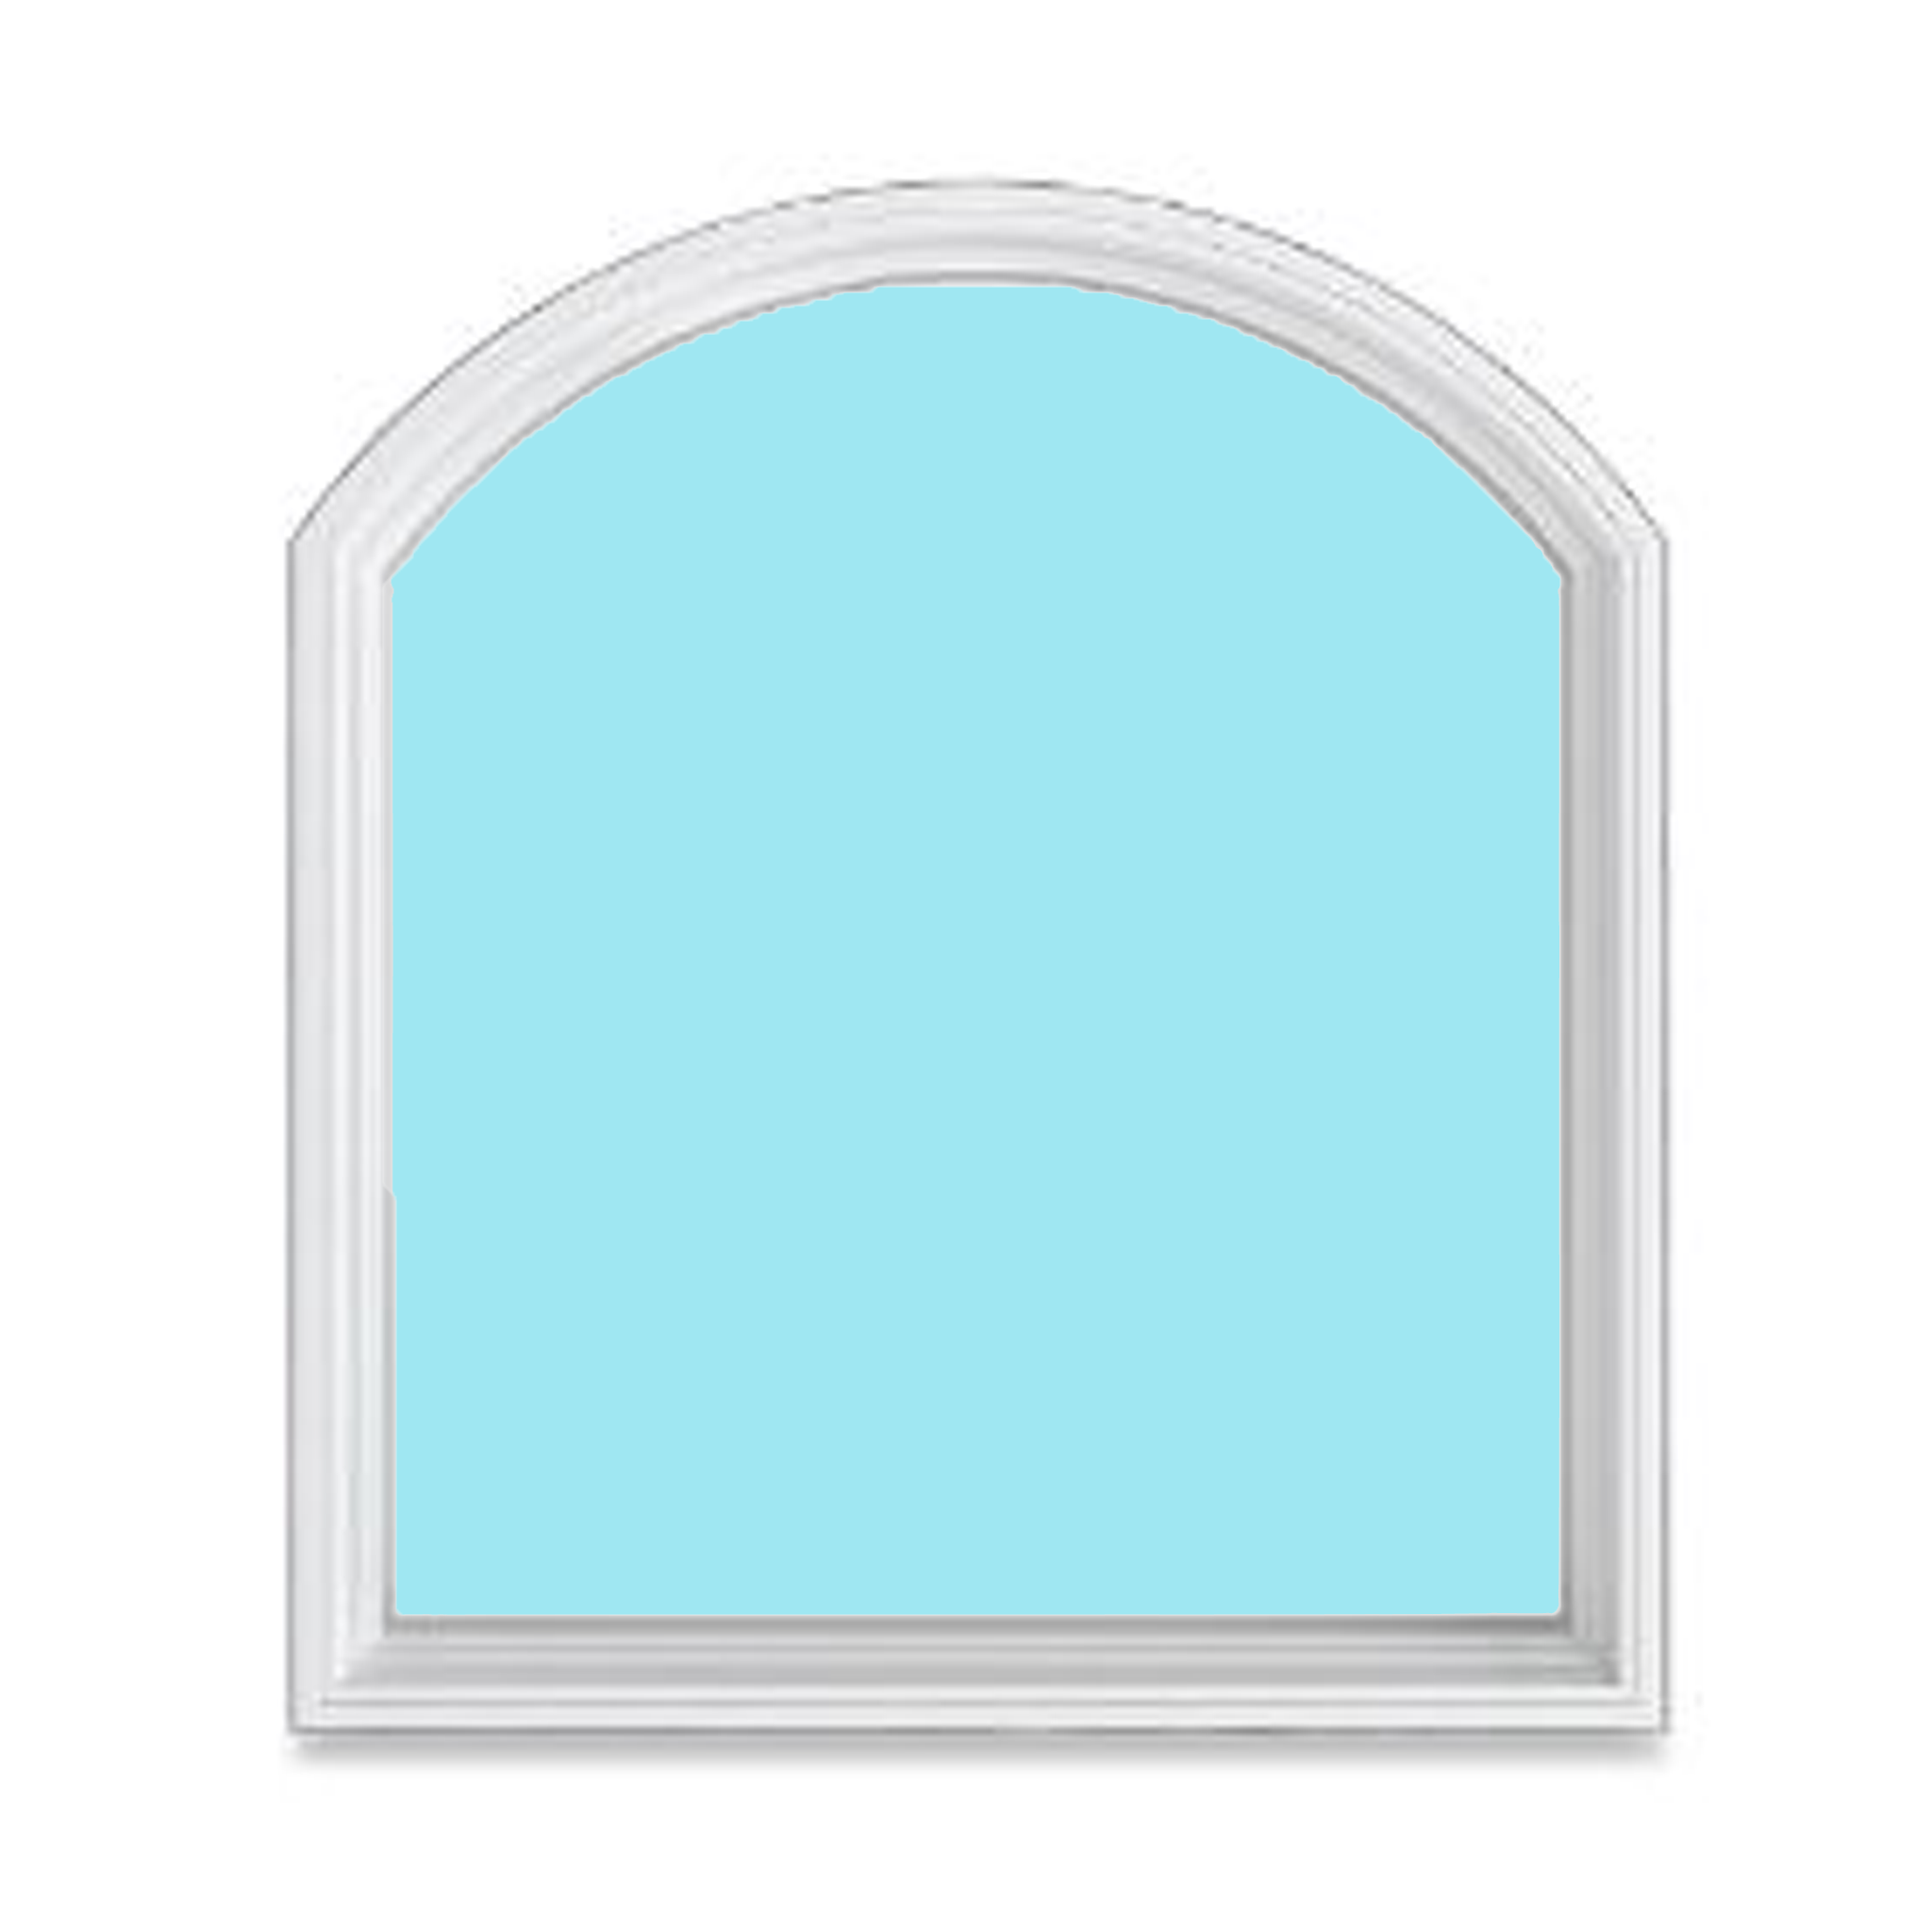 ARCH TOP Image